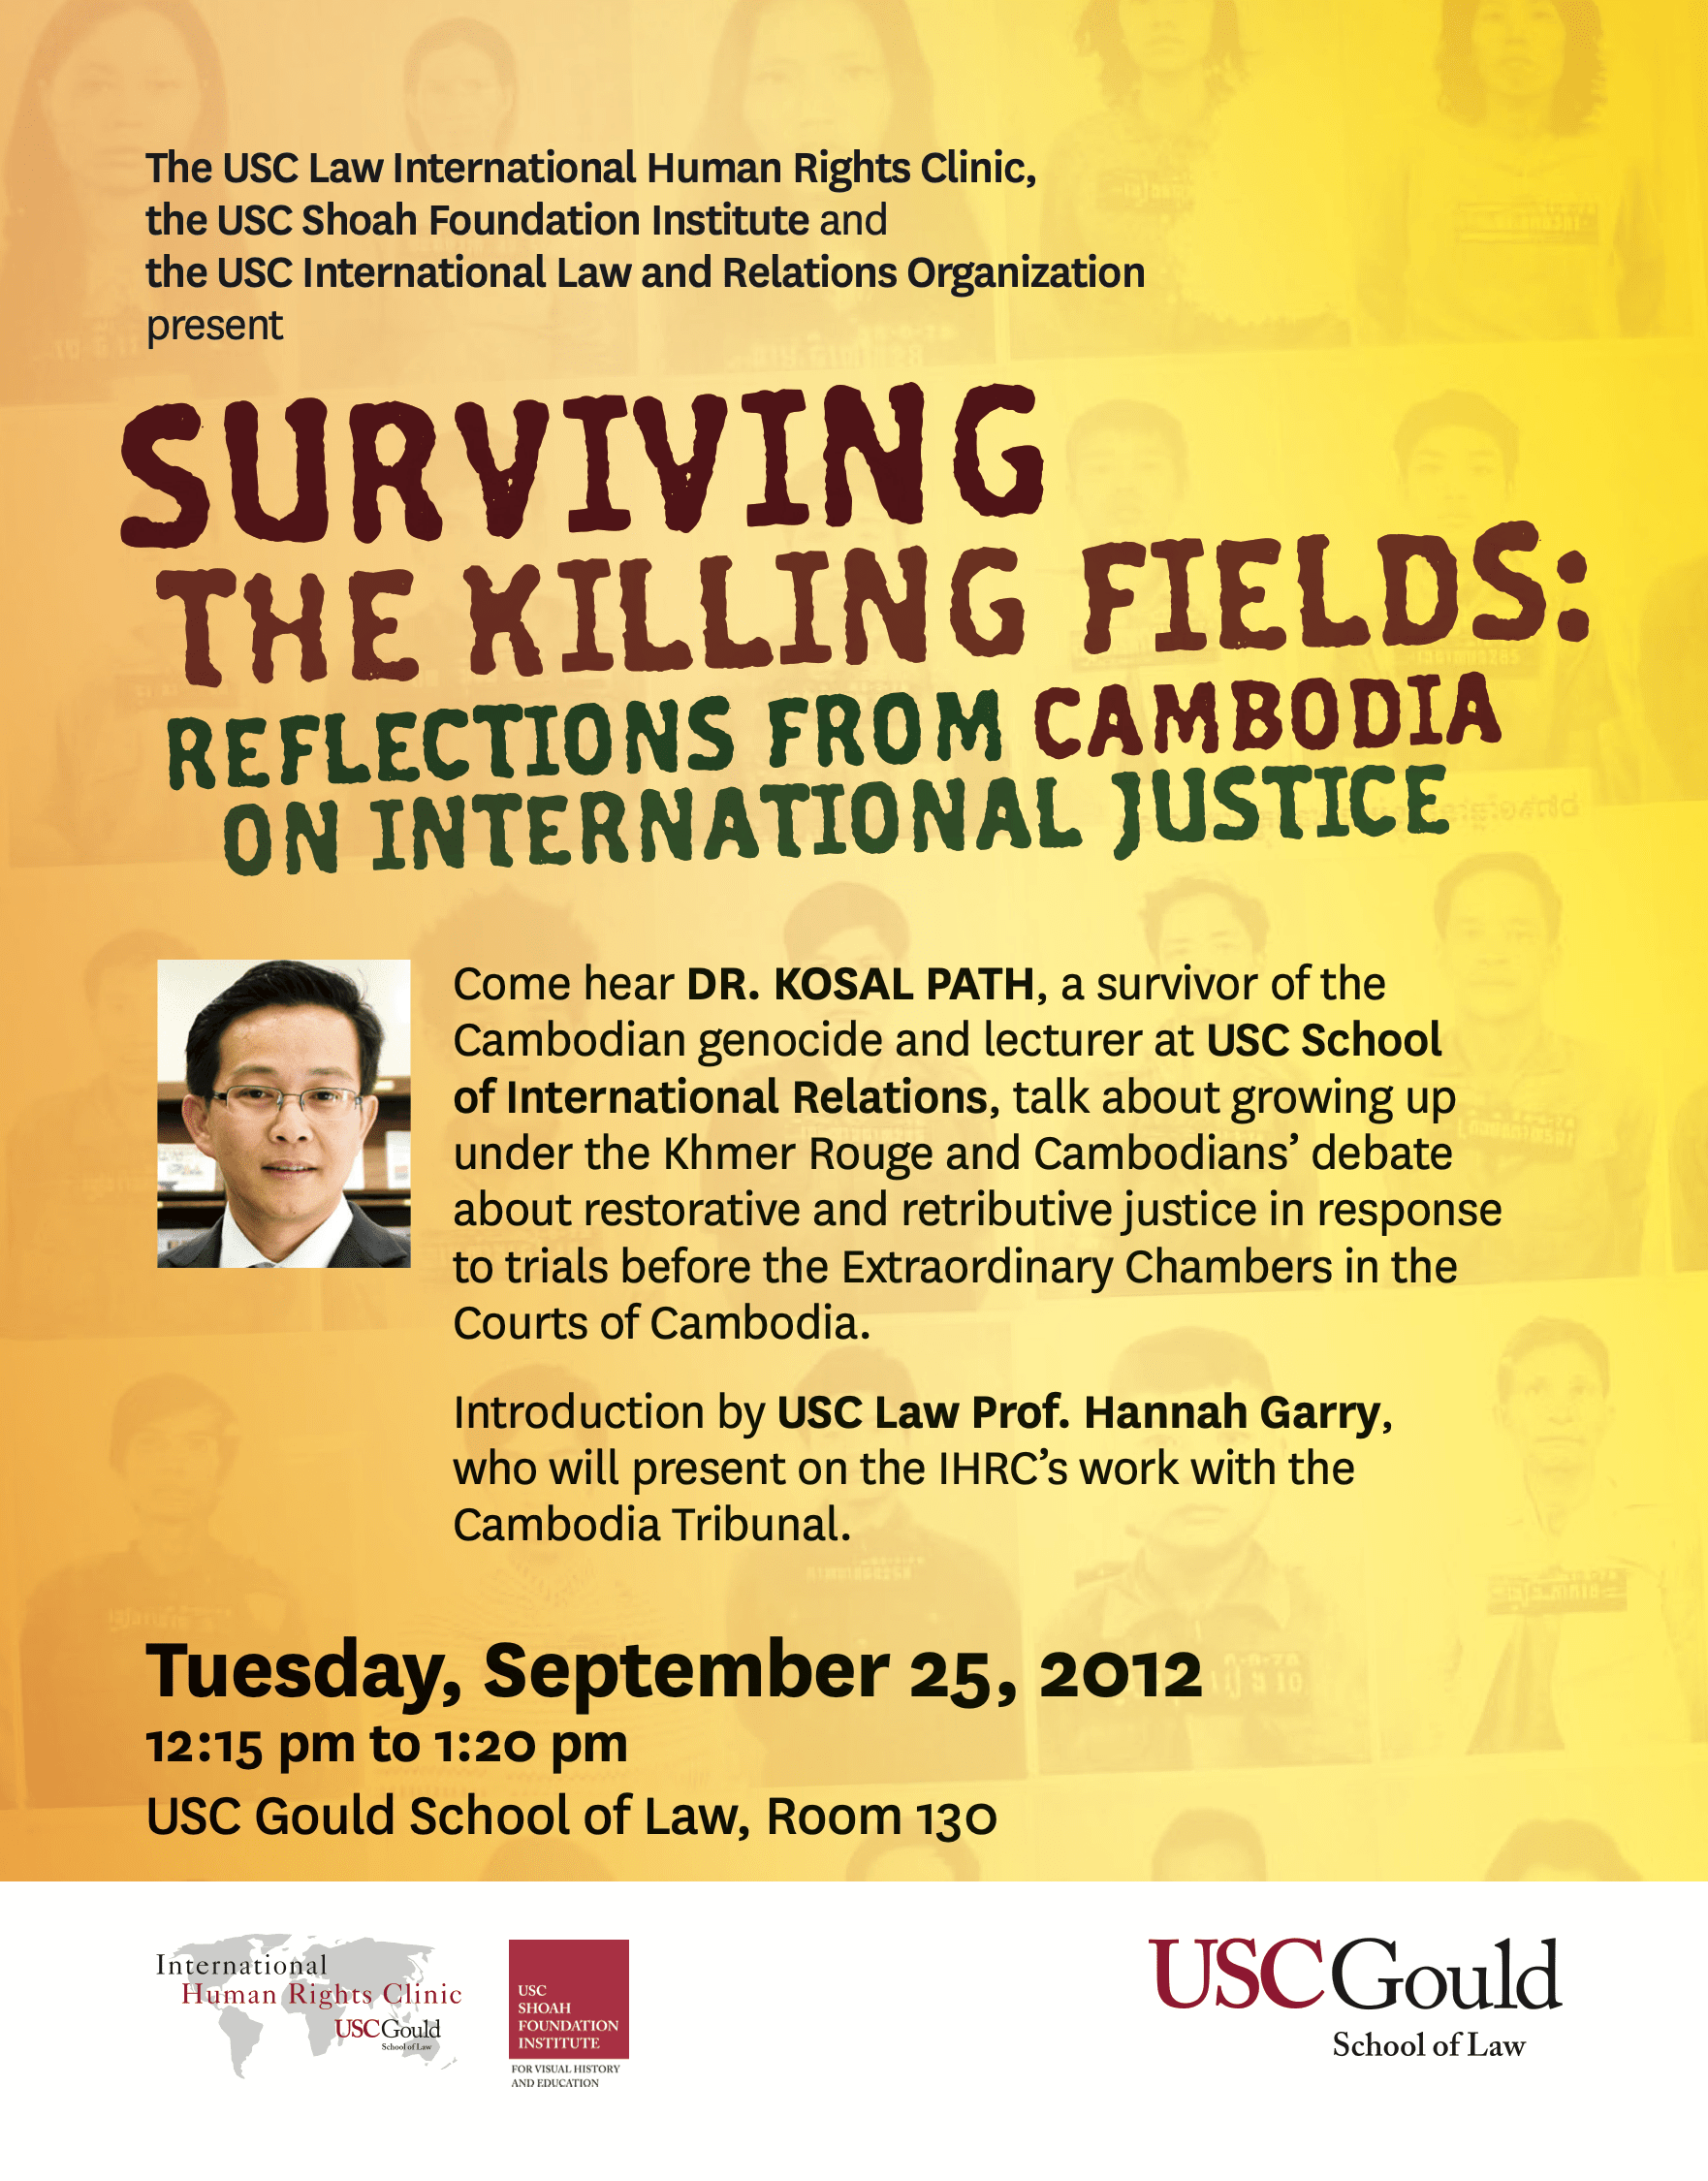 EVENT: Surviving the Killing Fields – Reflections from Cambodia on International Justice